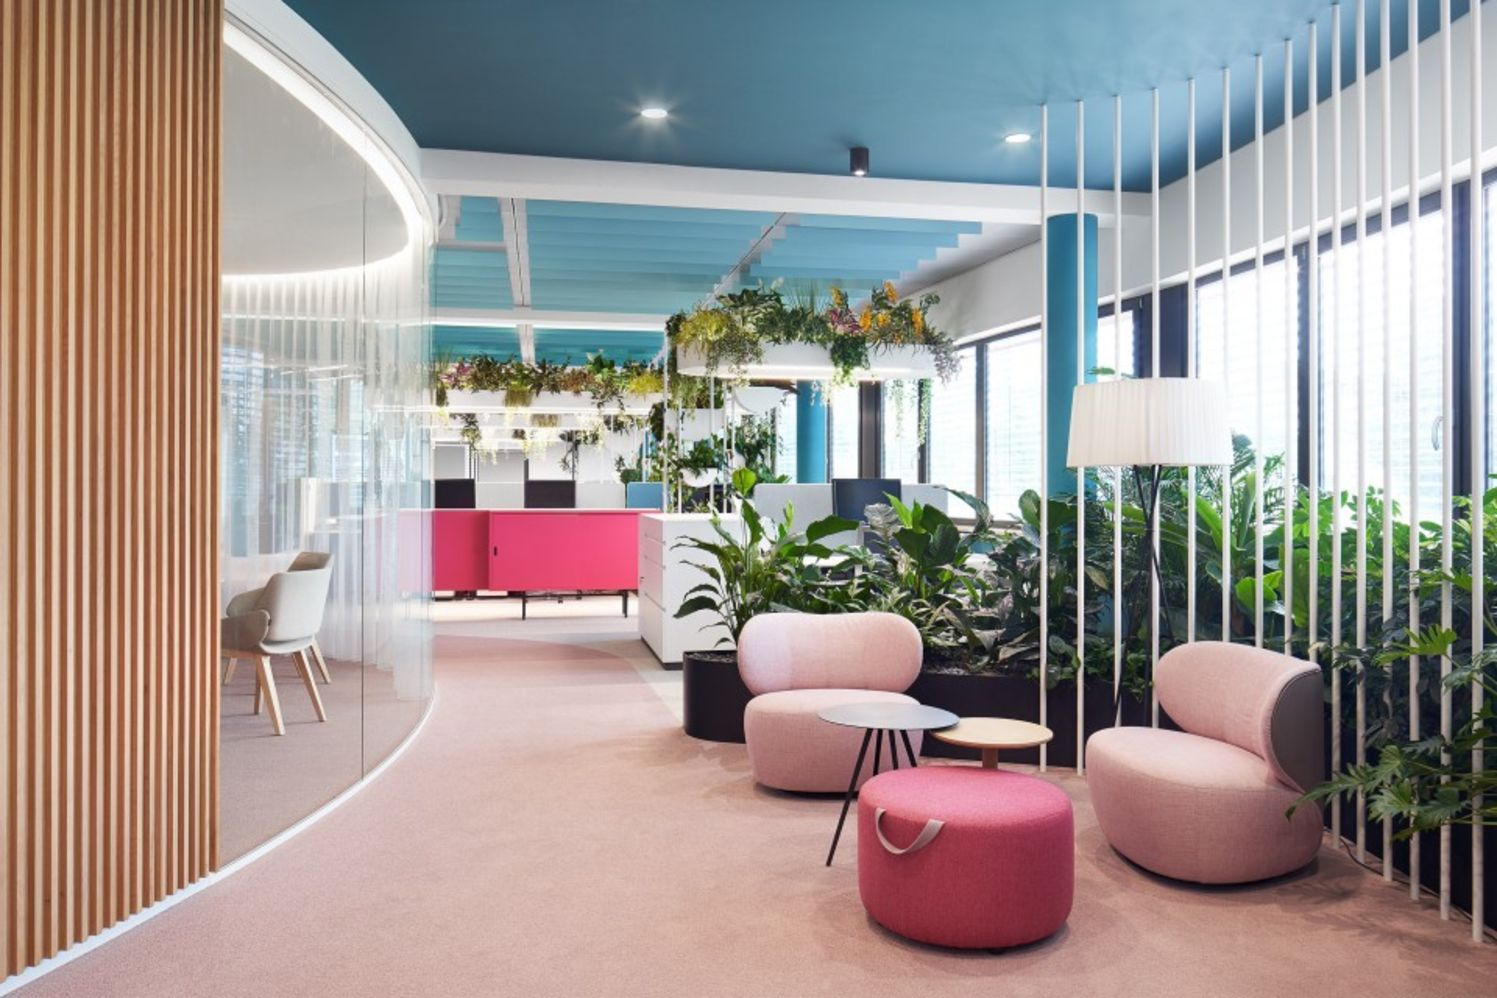 https://elonahome.com/wp-content/uploads/2020/12/Creative-office-concept-created-for-dynamic-and-effective-working-space-5.jpg